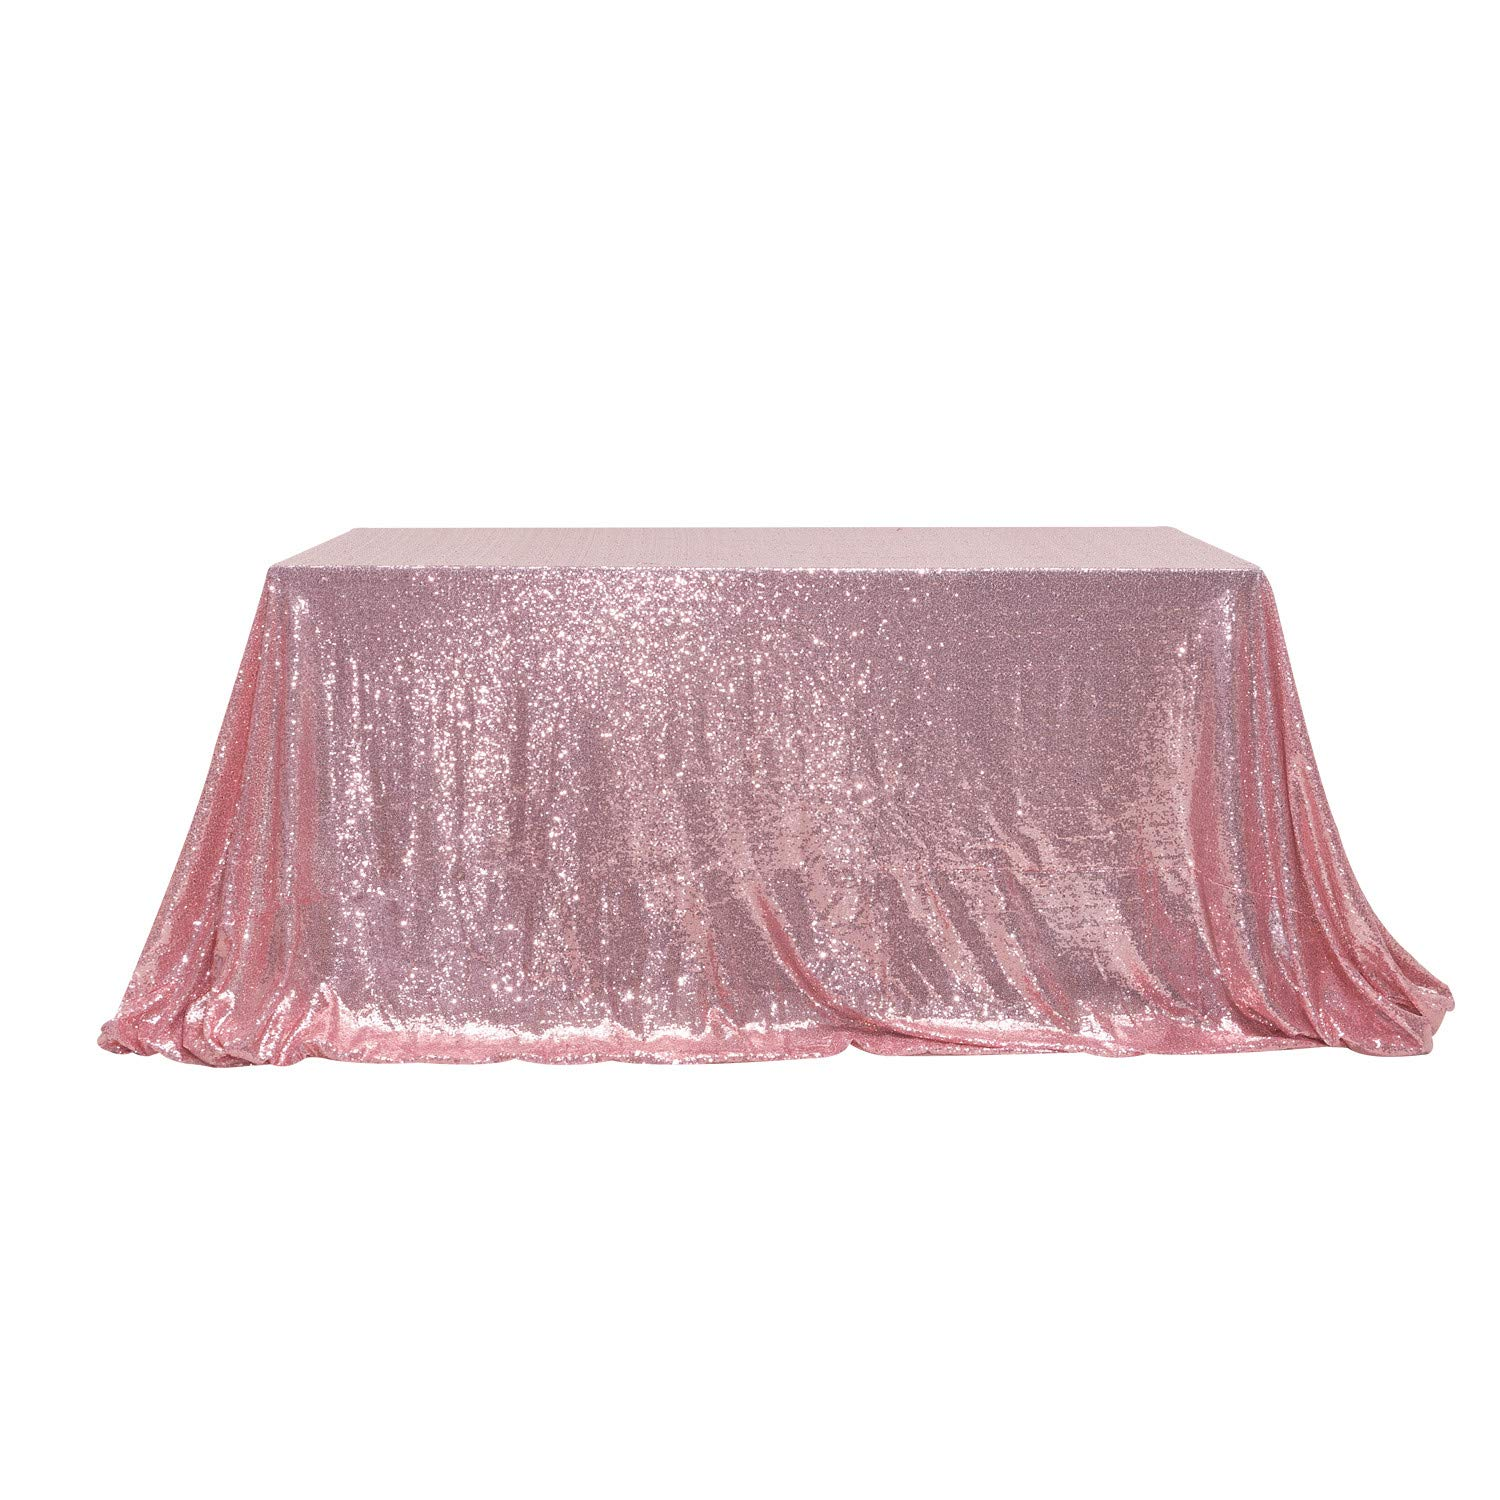 PartyDelight 60'' x 120'' Fuchsia Pink Sequin Tablecloth for Wedding, Baby Shower, Birthday, Banquet, Christmas, and Banquet.